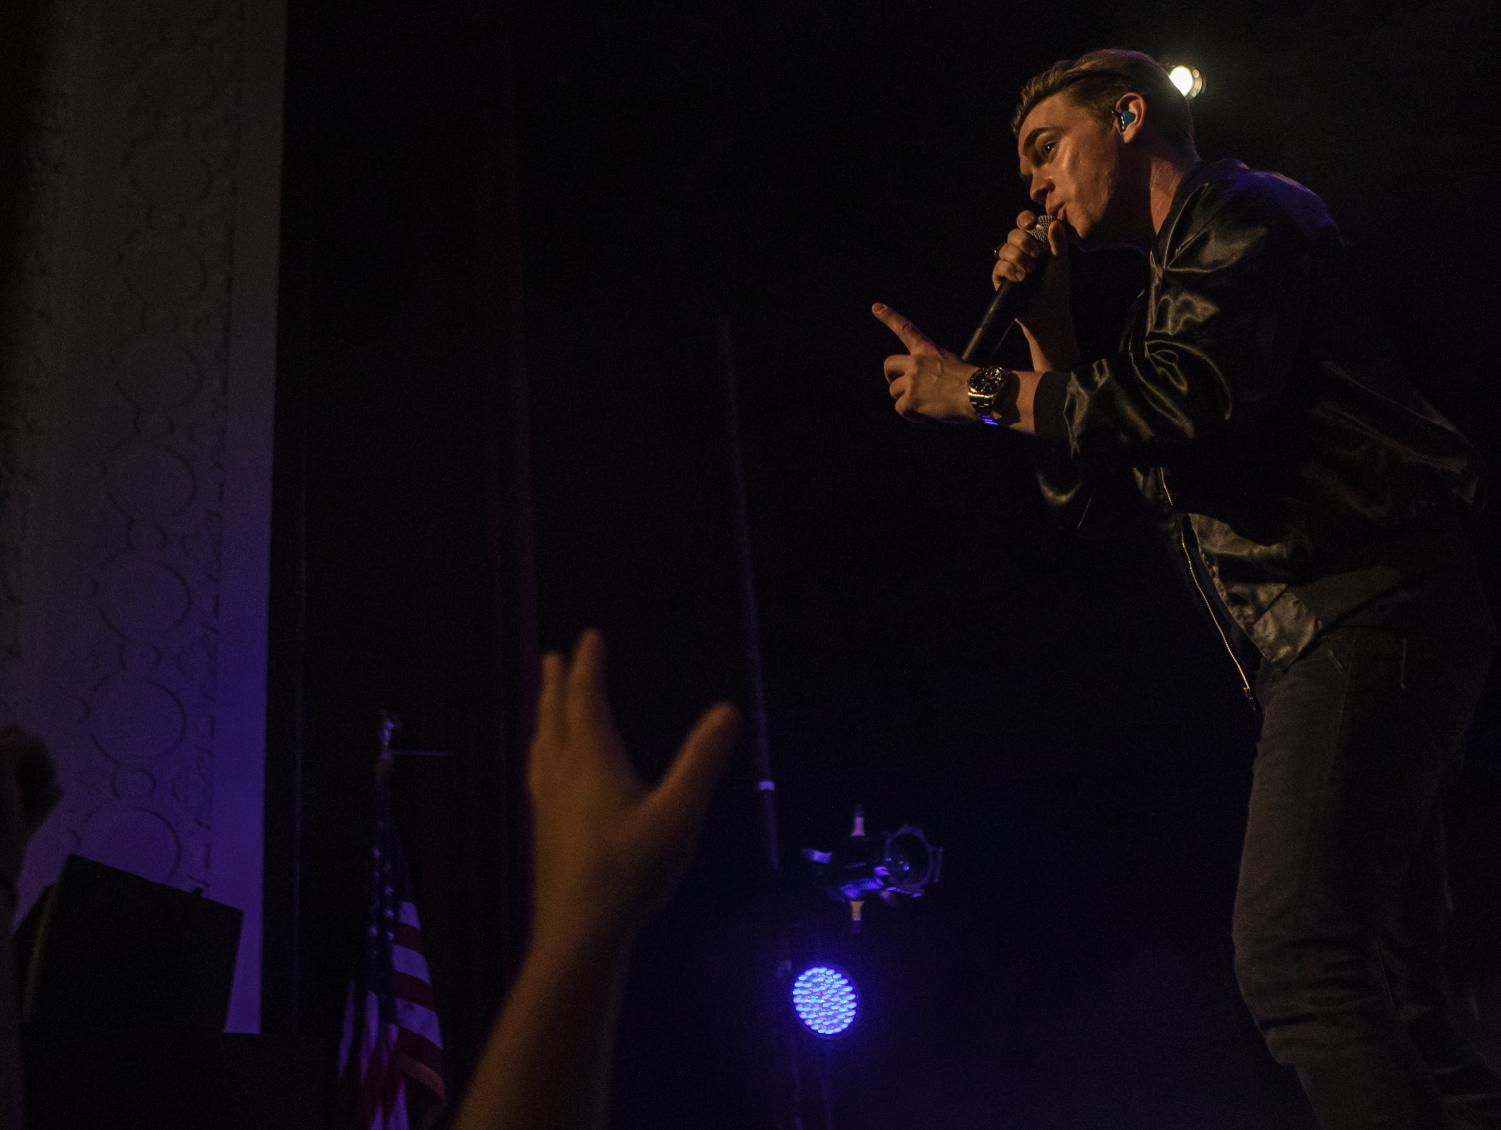 Jesse McCartney sings to the crowd, Saturday, Oct. 13, 2018, at the Shryock Auditorium. (Isabel Miller | @IsabelMillerde)